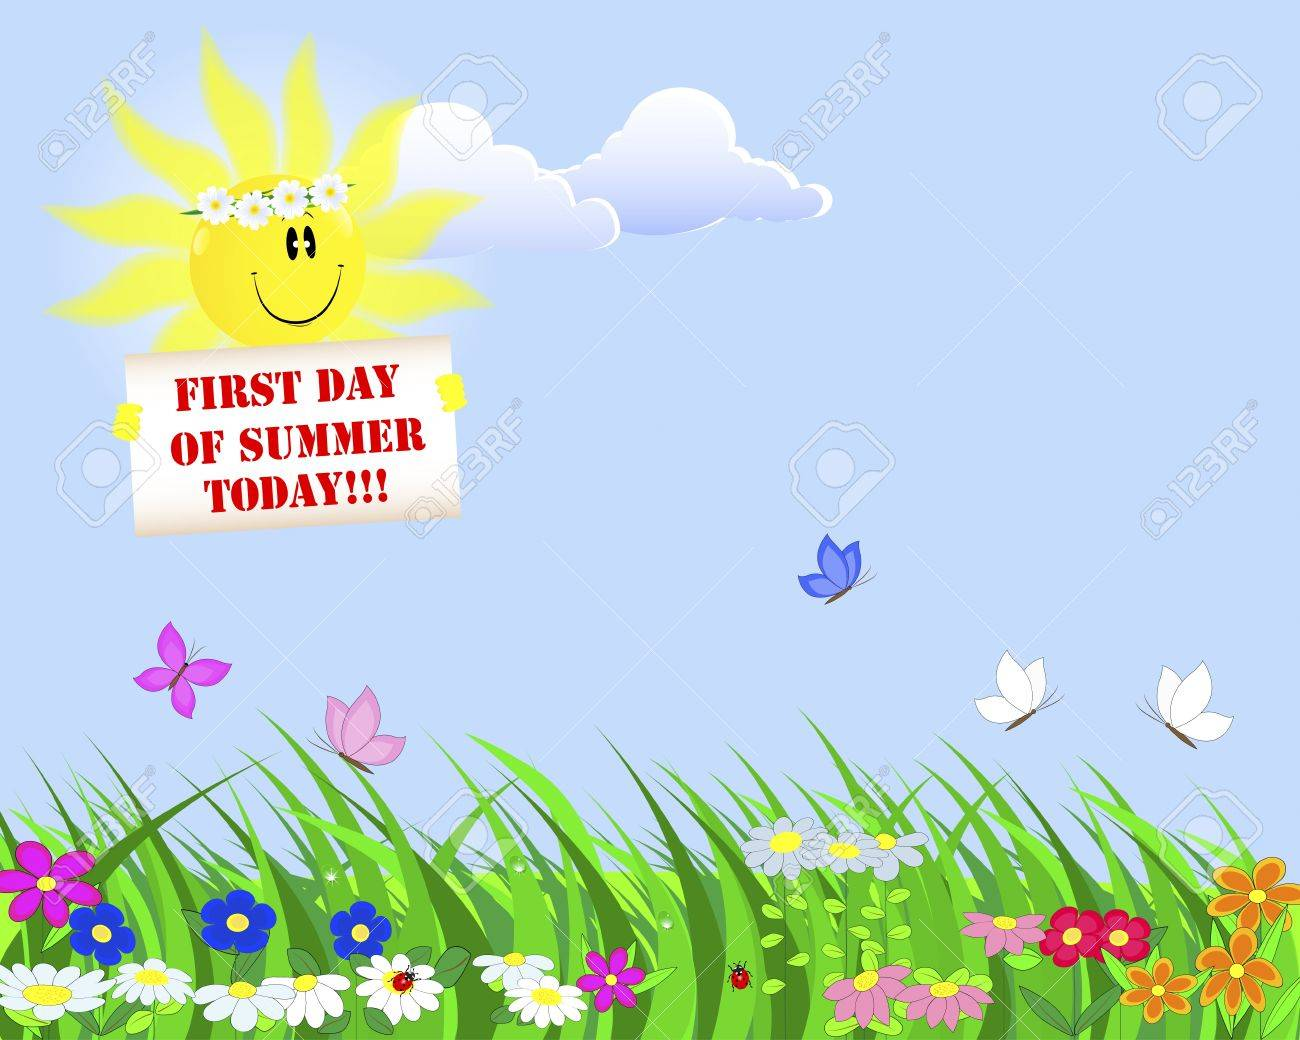 Happy 1st Day of Summer!! #summer #quotes #happy   First day of summer, 1st  day, Summer quotes